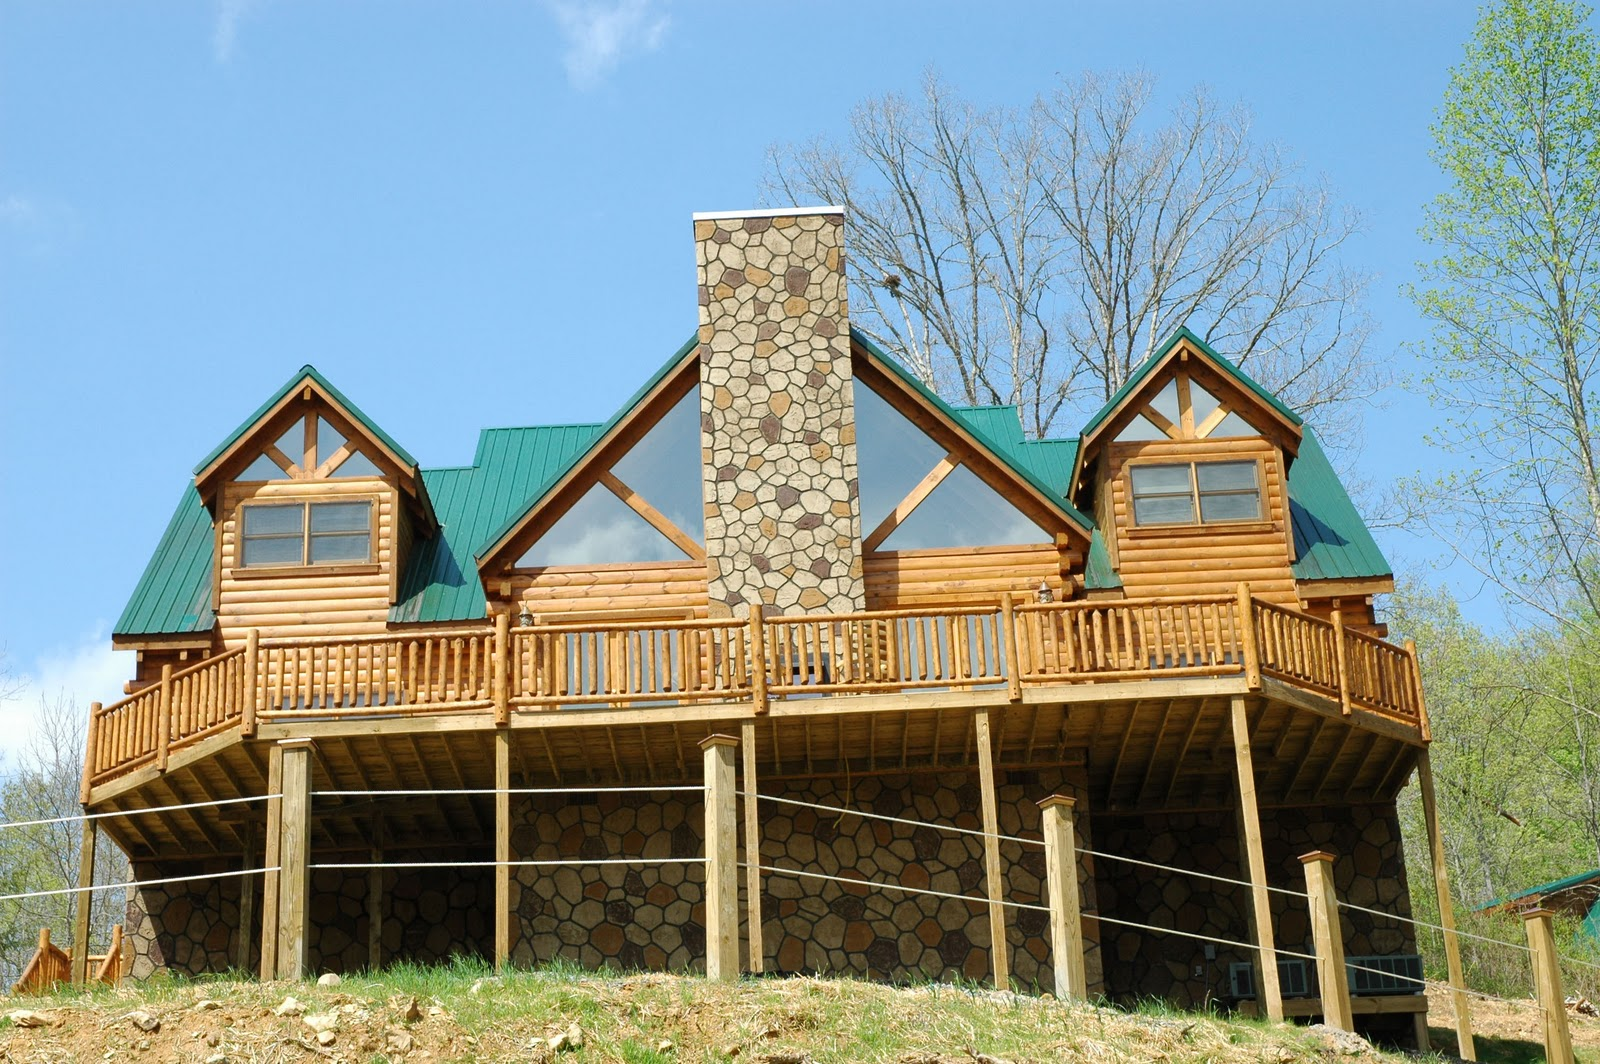 located love in best bedroom gatlinburg i cabins june view cabin rentals